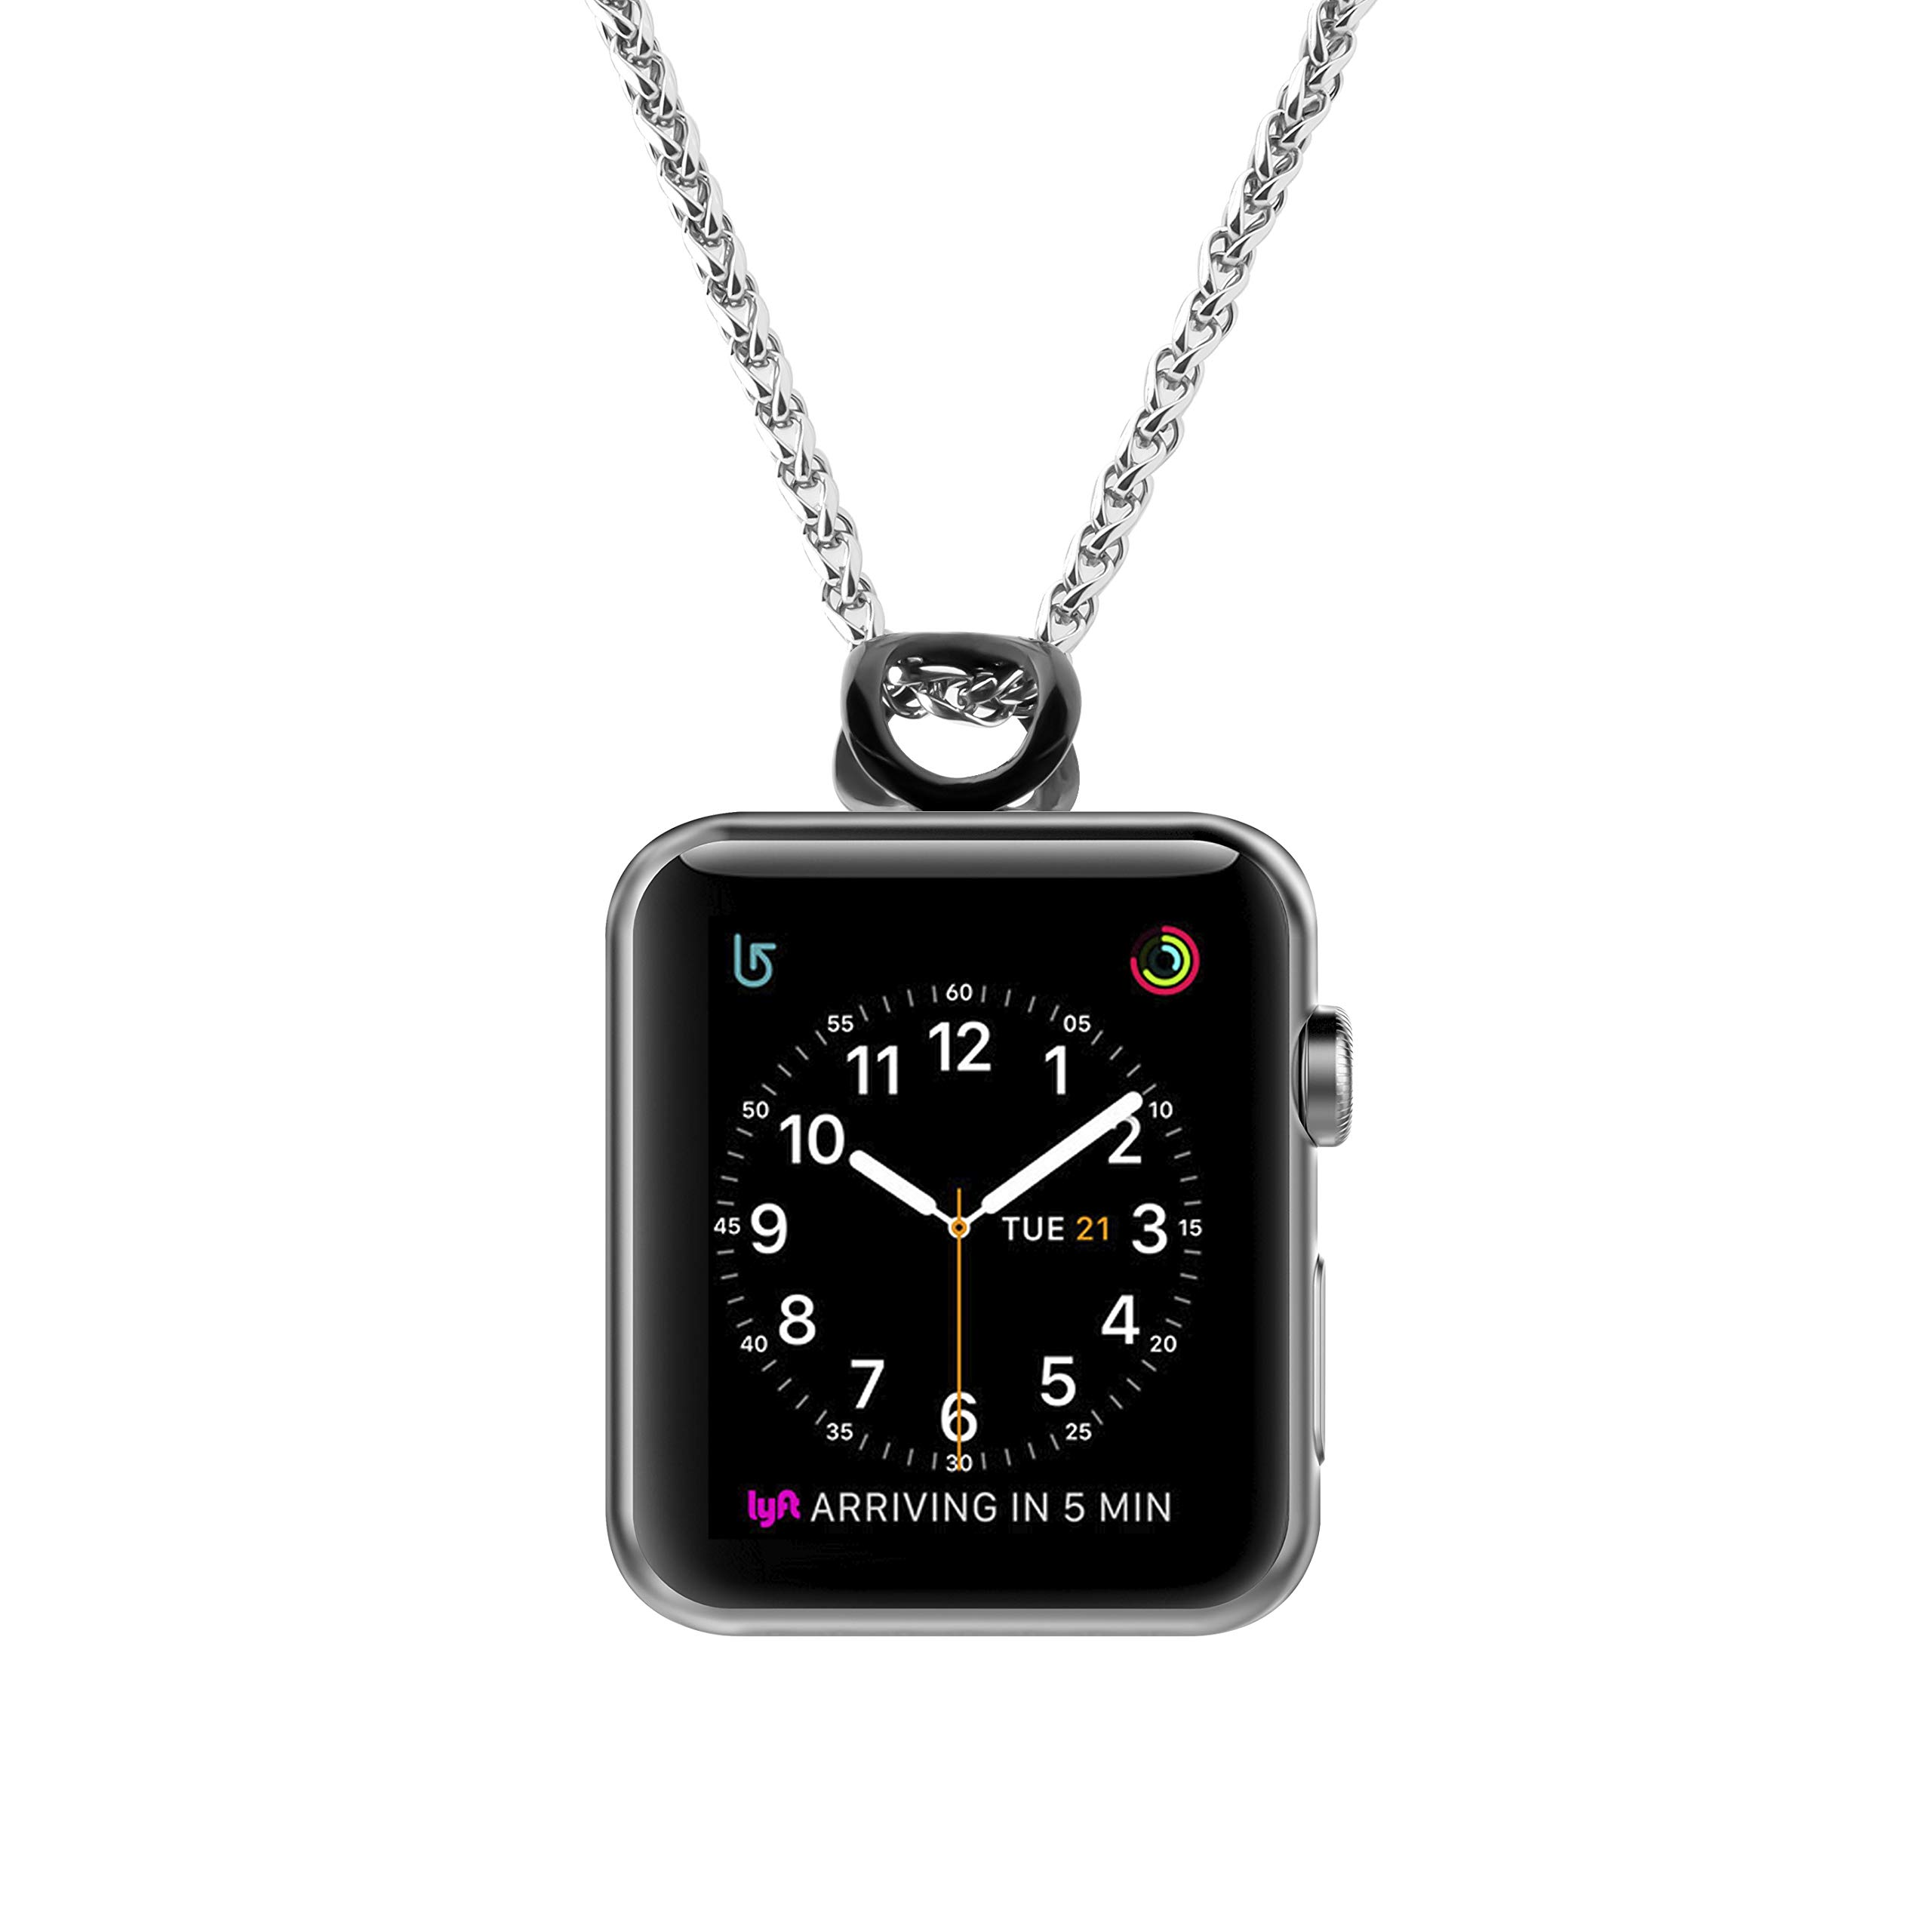 AsiaFly Necklace Pendant Compatible Apple Watch, Infinity & Double Loop Connector for Apple Watch Series 4, Series 3, Series 2, Series 1 Sport & Edition - Black 42/44mm Infinity by AsiaFly (Image #3)